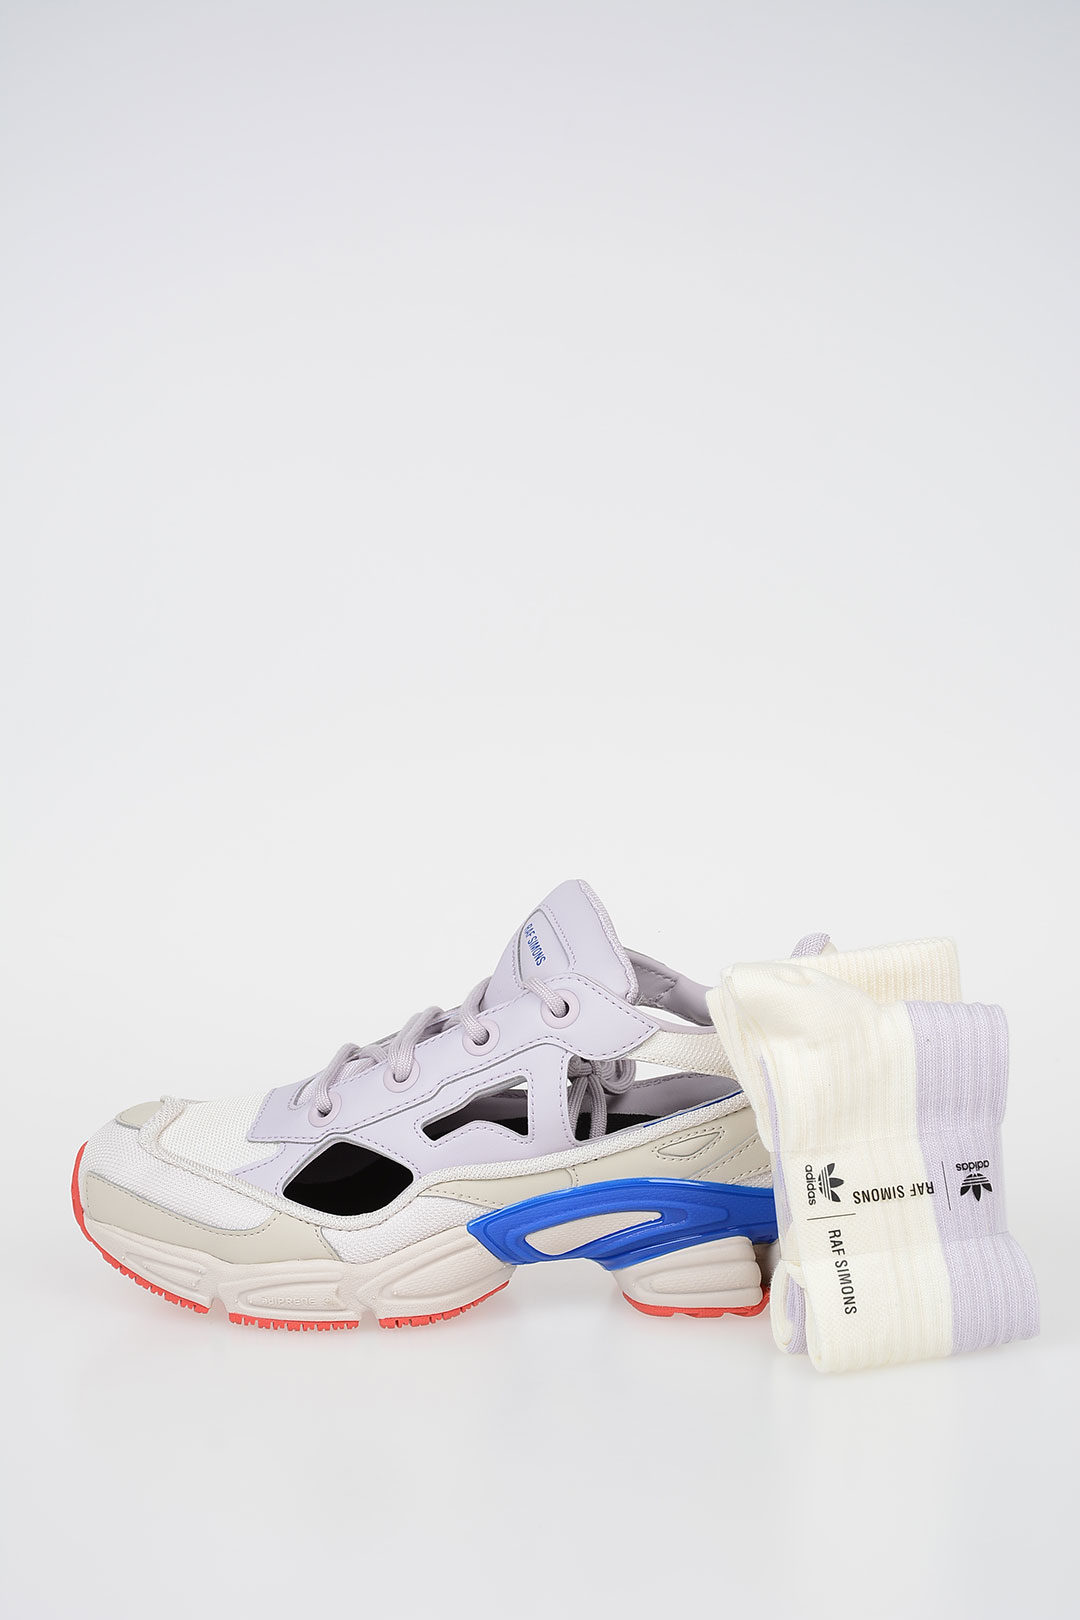 on sale d1f13 05db0 RAF SIMONS Sneakers REPLICANT OZWEEGO set Socks